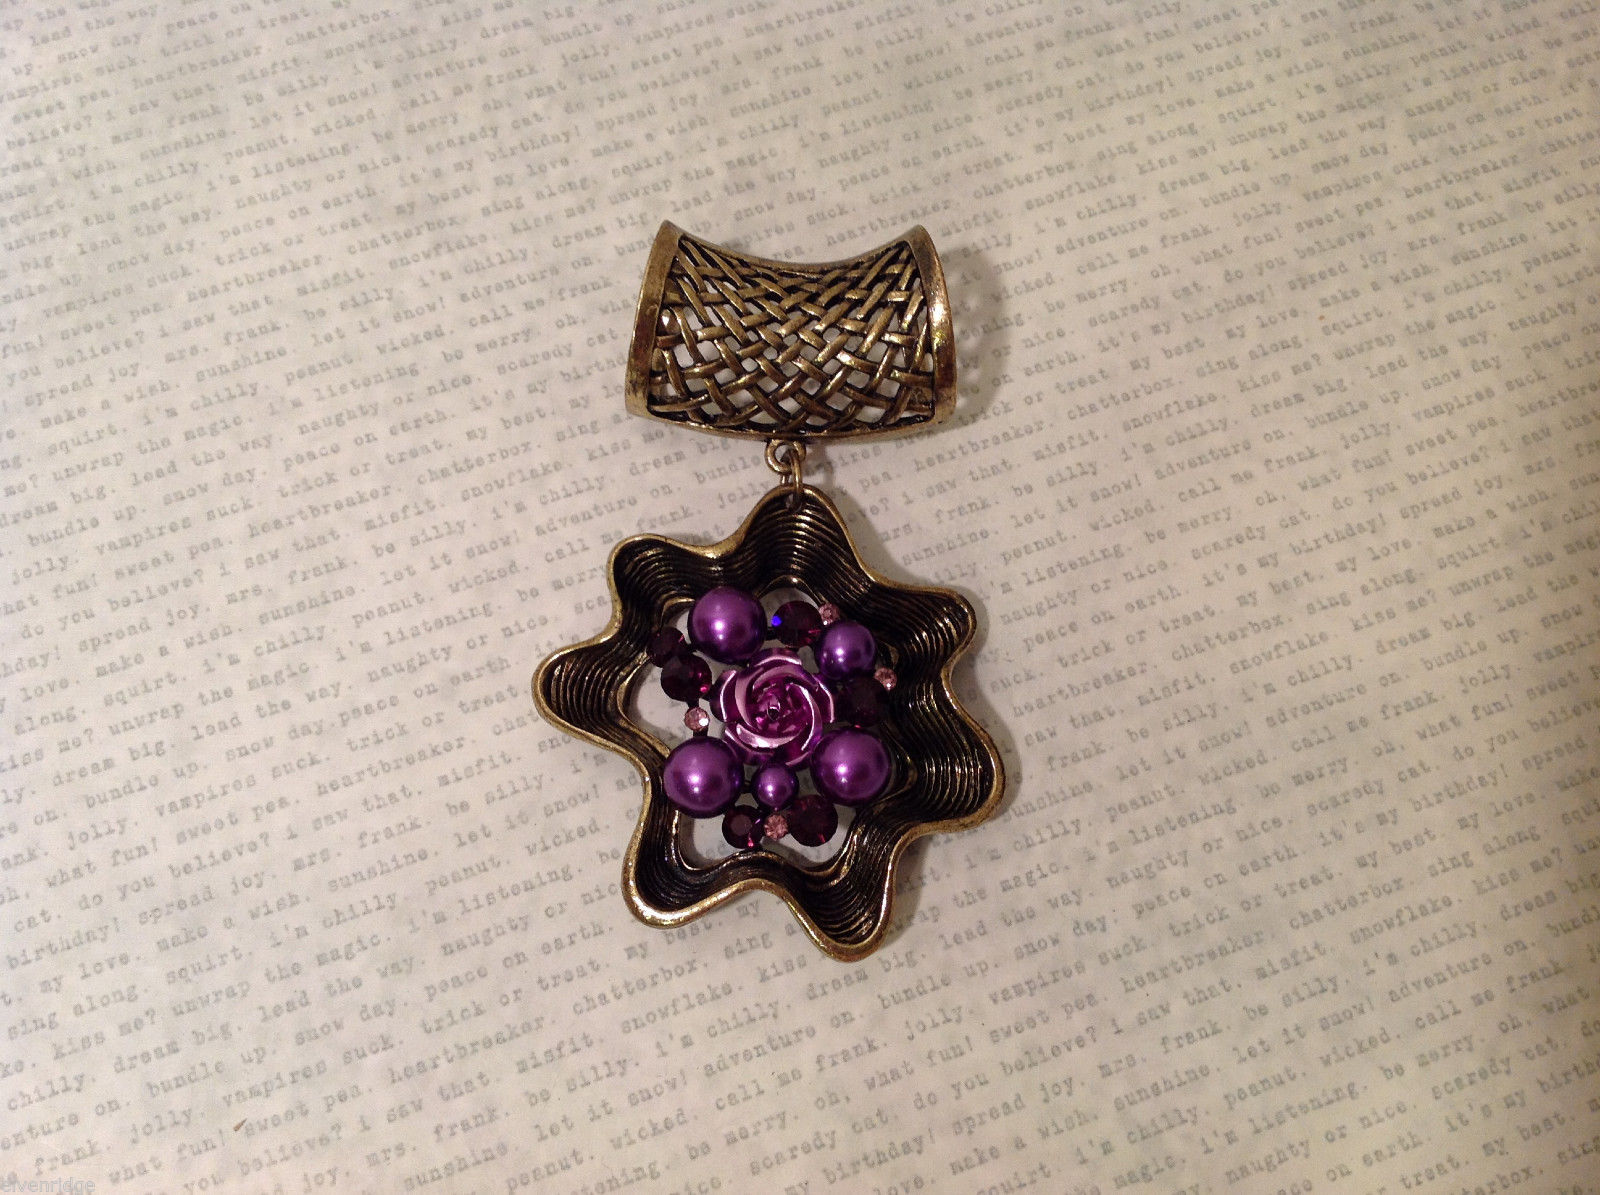 Magic Scarf Gold Tone Flower Shaped Scarf Pendant Purple Crystals and Beads